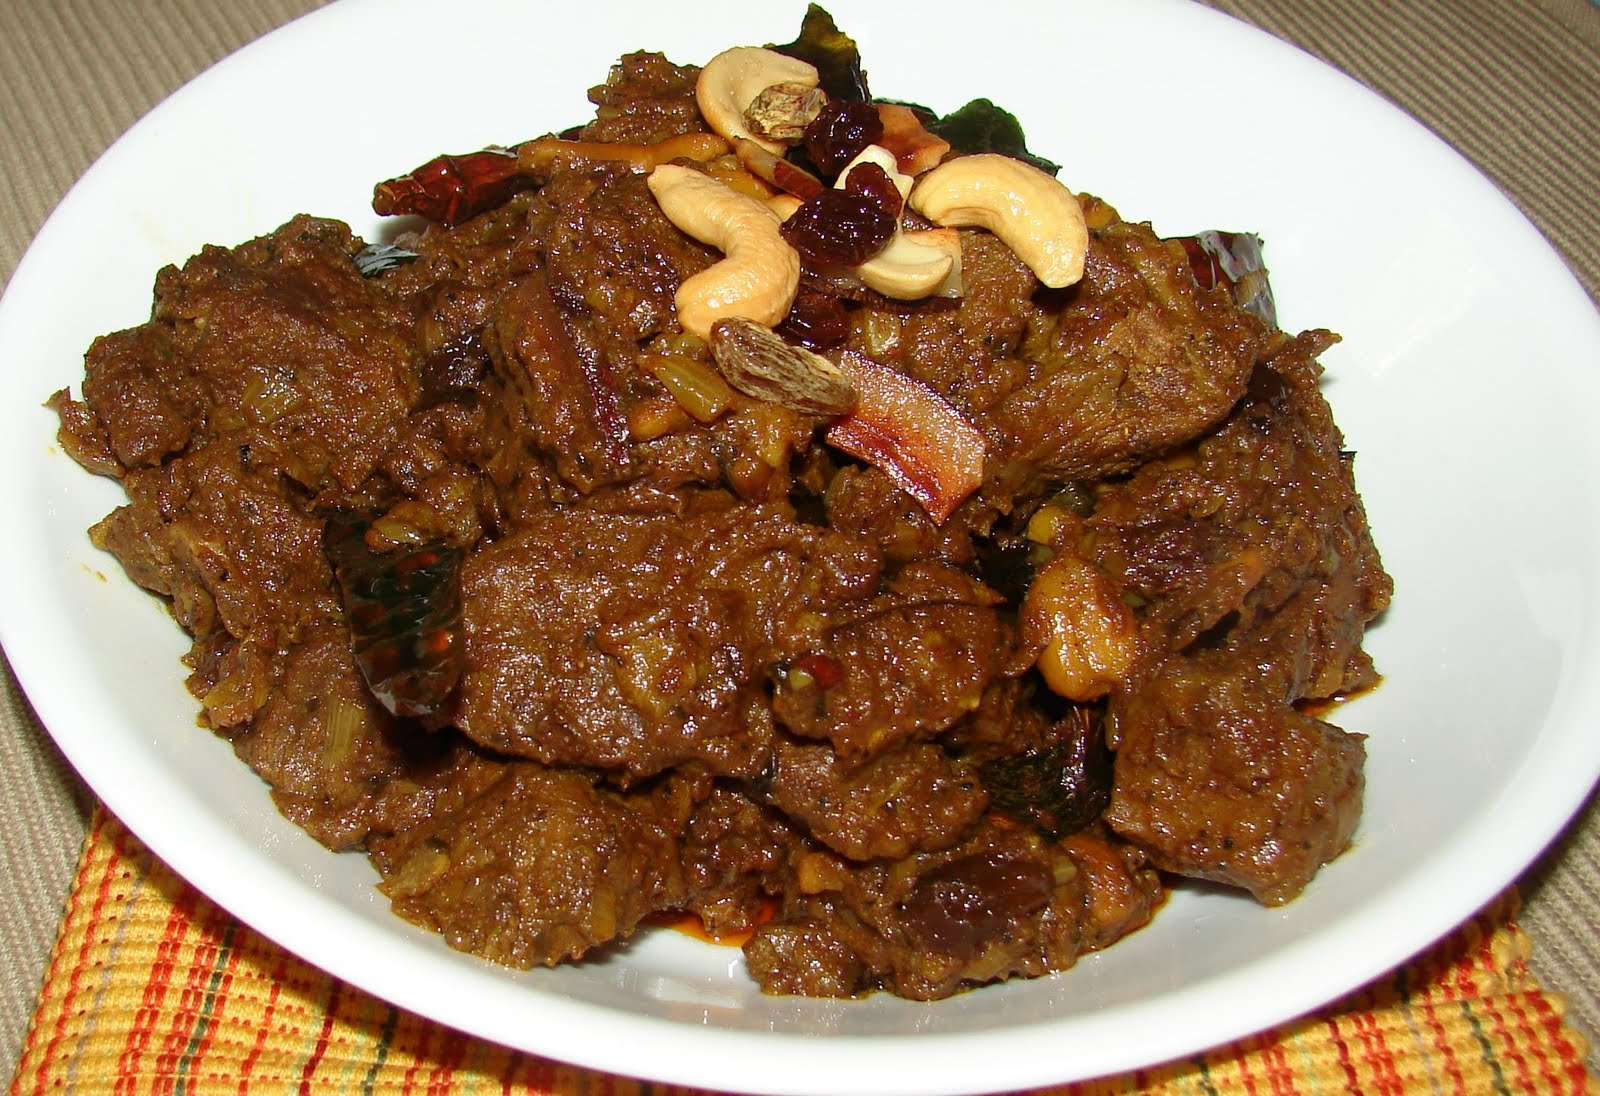 Mutton slices cooked